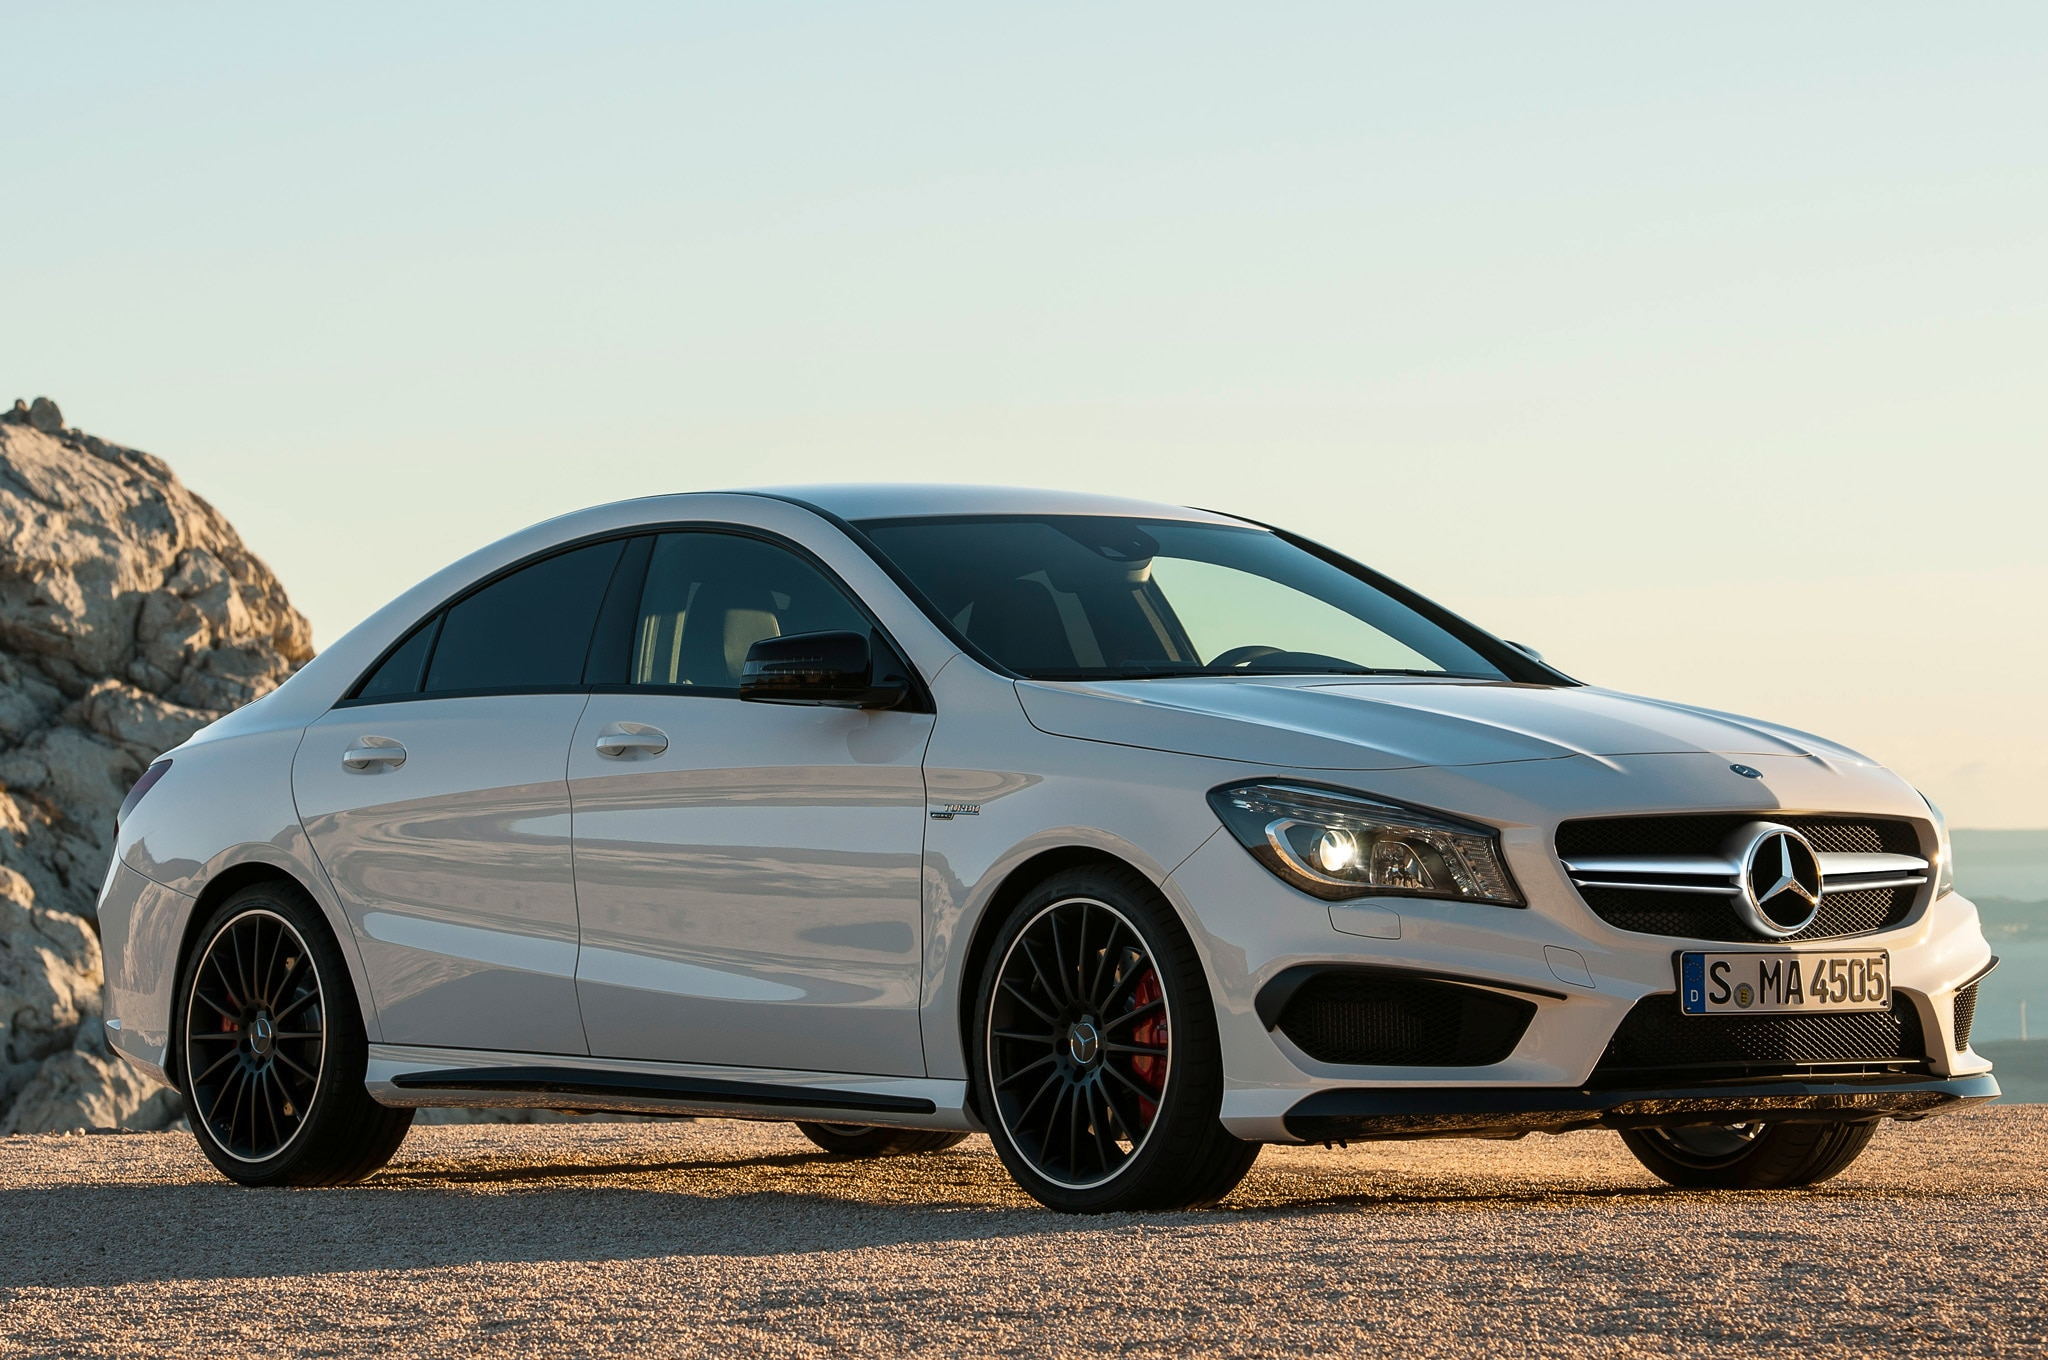 2014 mercedes benz cla45 amg rated 23 31 mpg by epa for Mercedes benz mpg